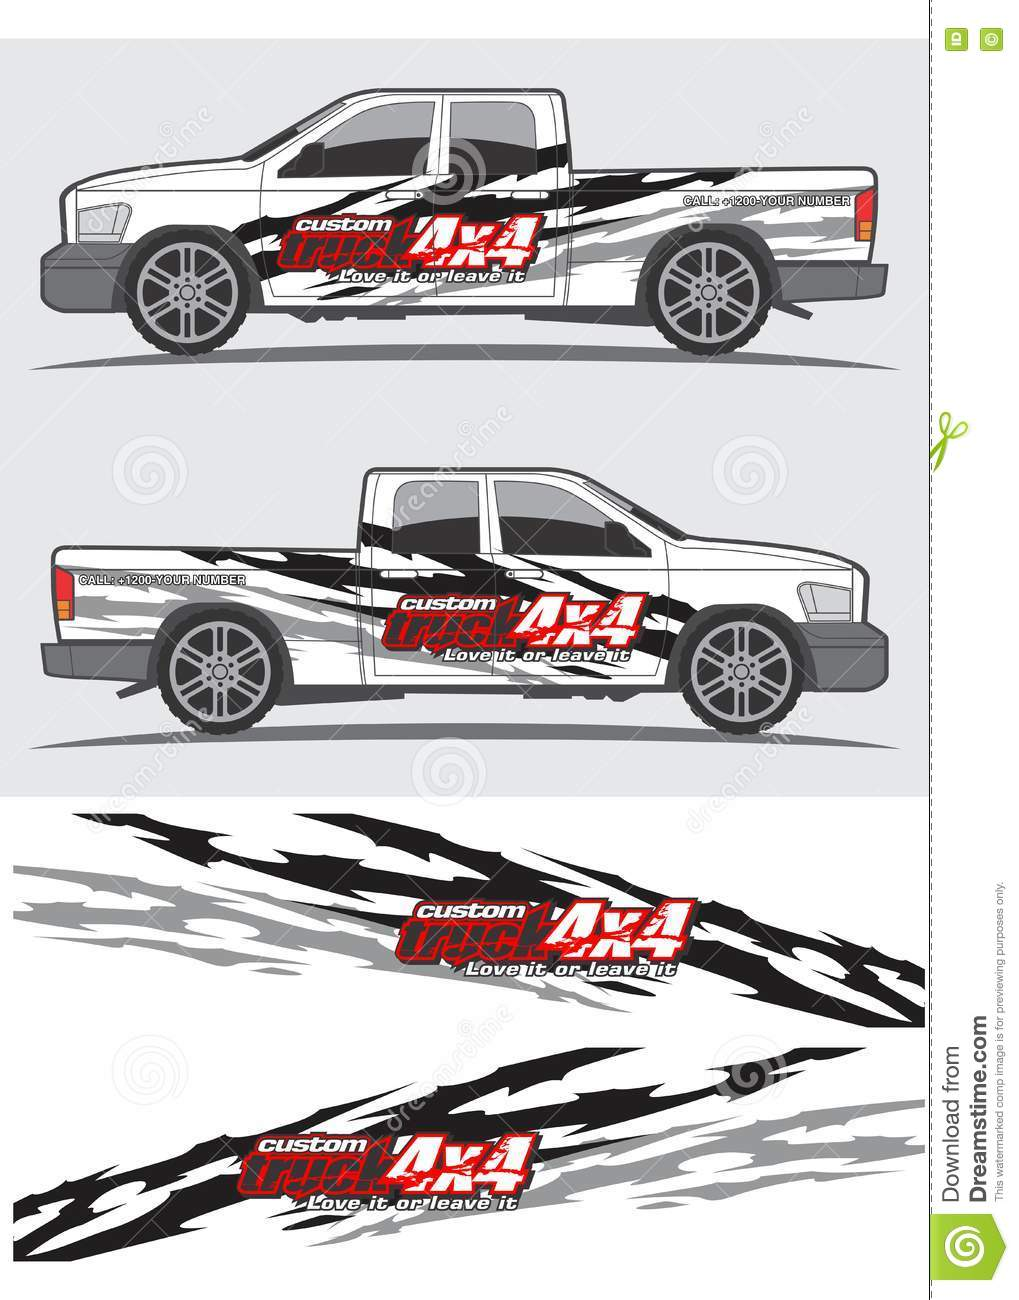 Pickup Truck Graphics And Decals